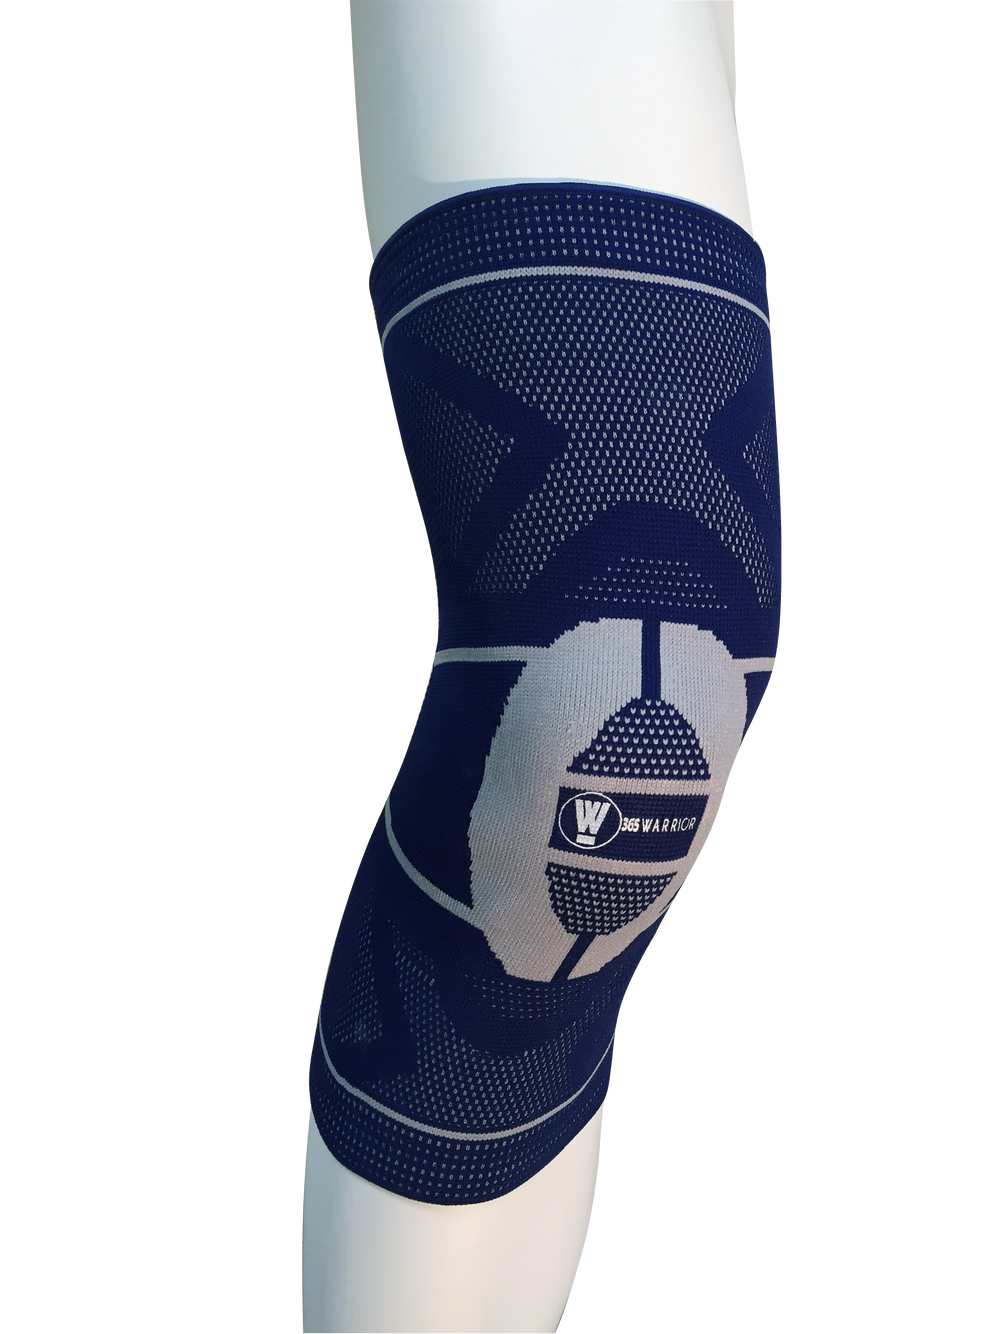 Image of 365Warrior Compression Knee Sleeve with Silicone Insert